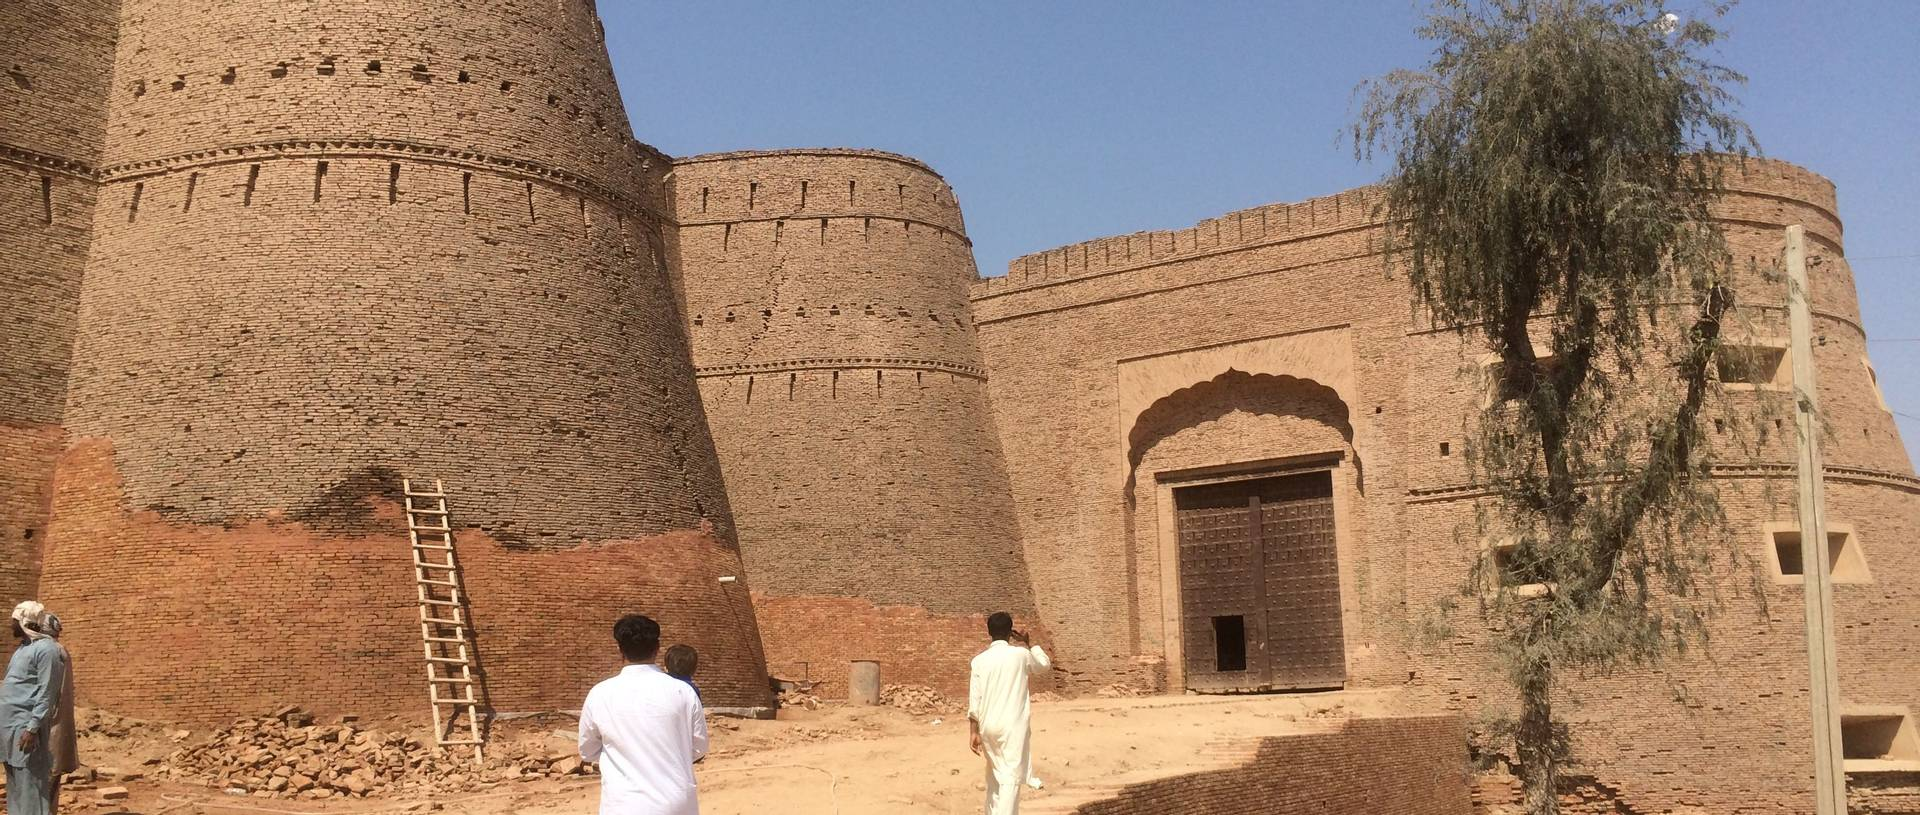 Derewar Fort, Pakistan.JPG